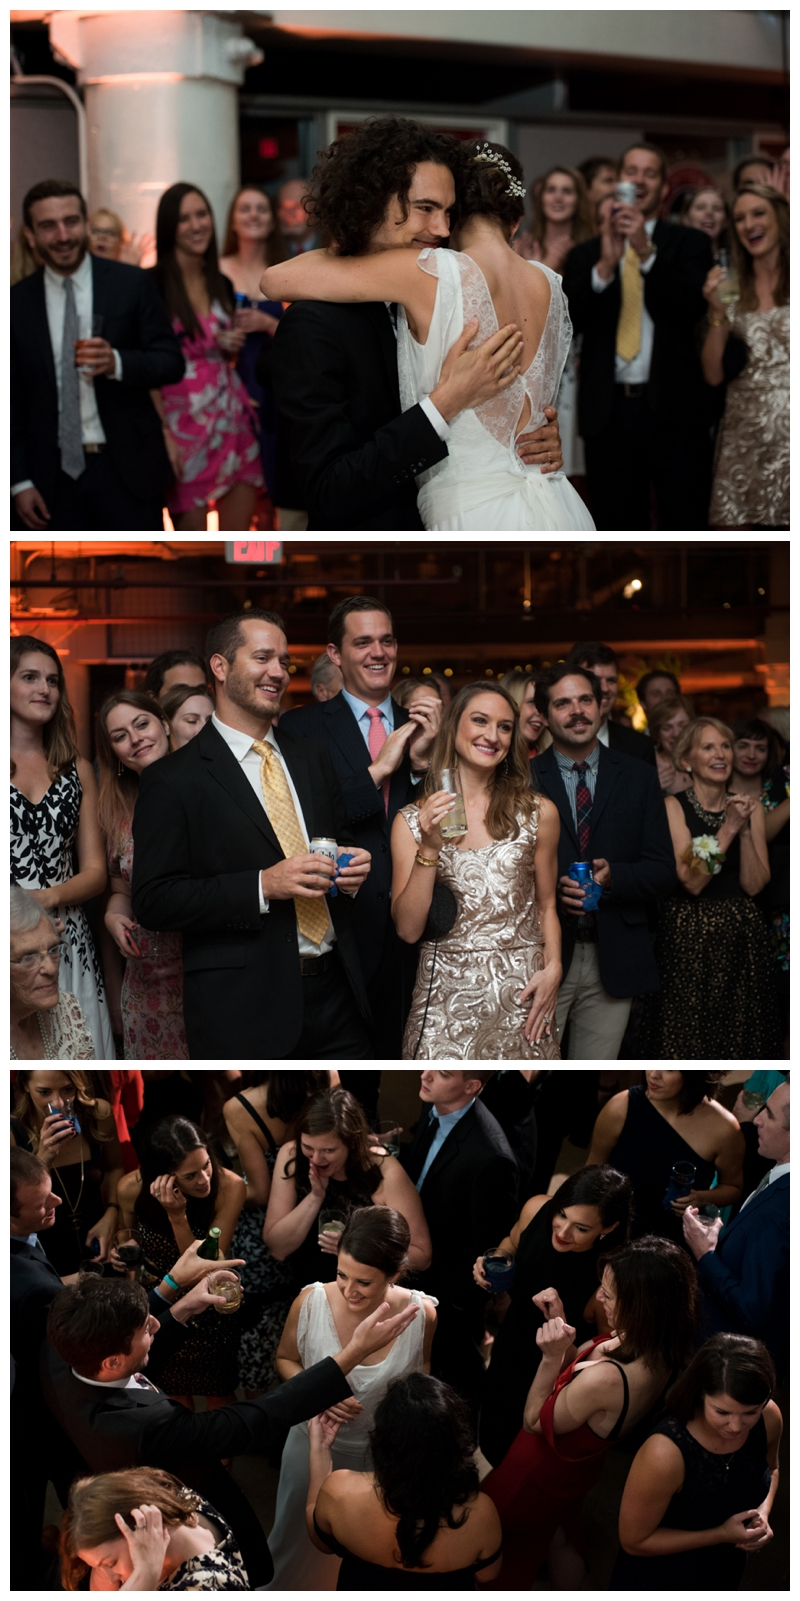 Wedding in Old Town Alexandria Virginia at the Torpedo Factory Art Center by Rachael Foster Photography_0088.jpg